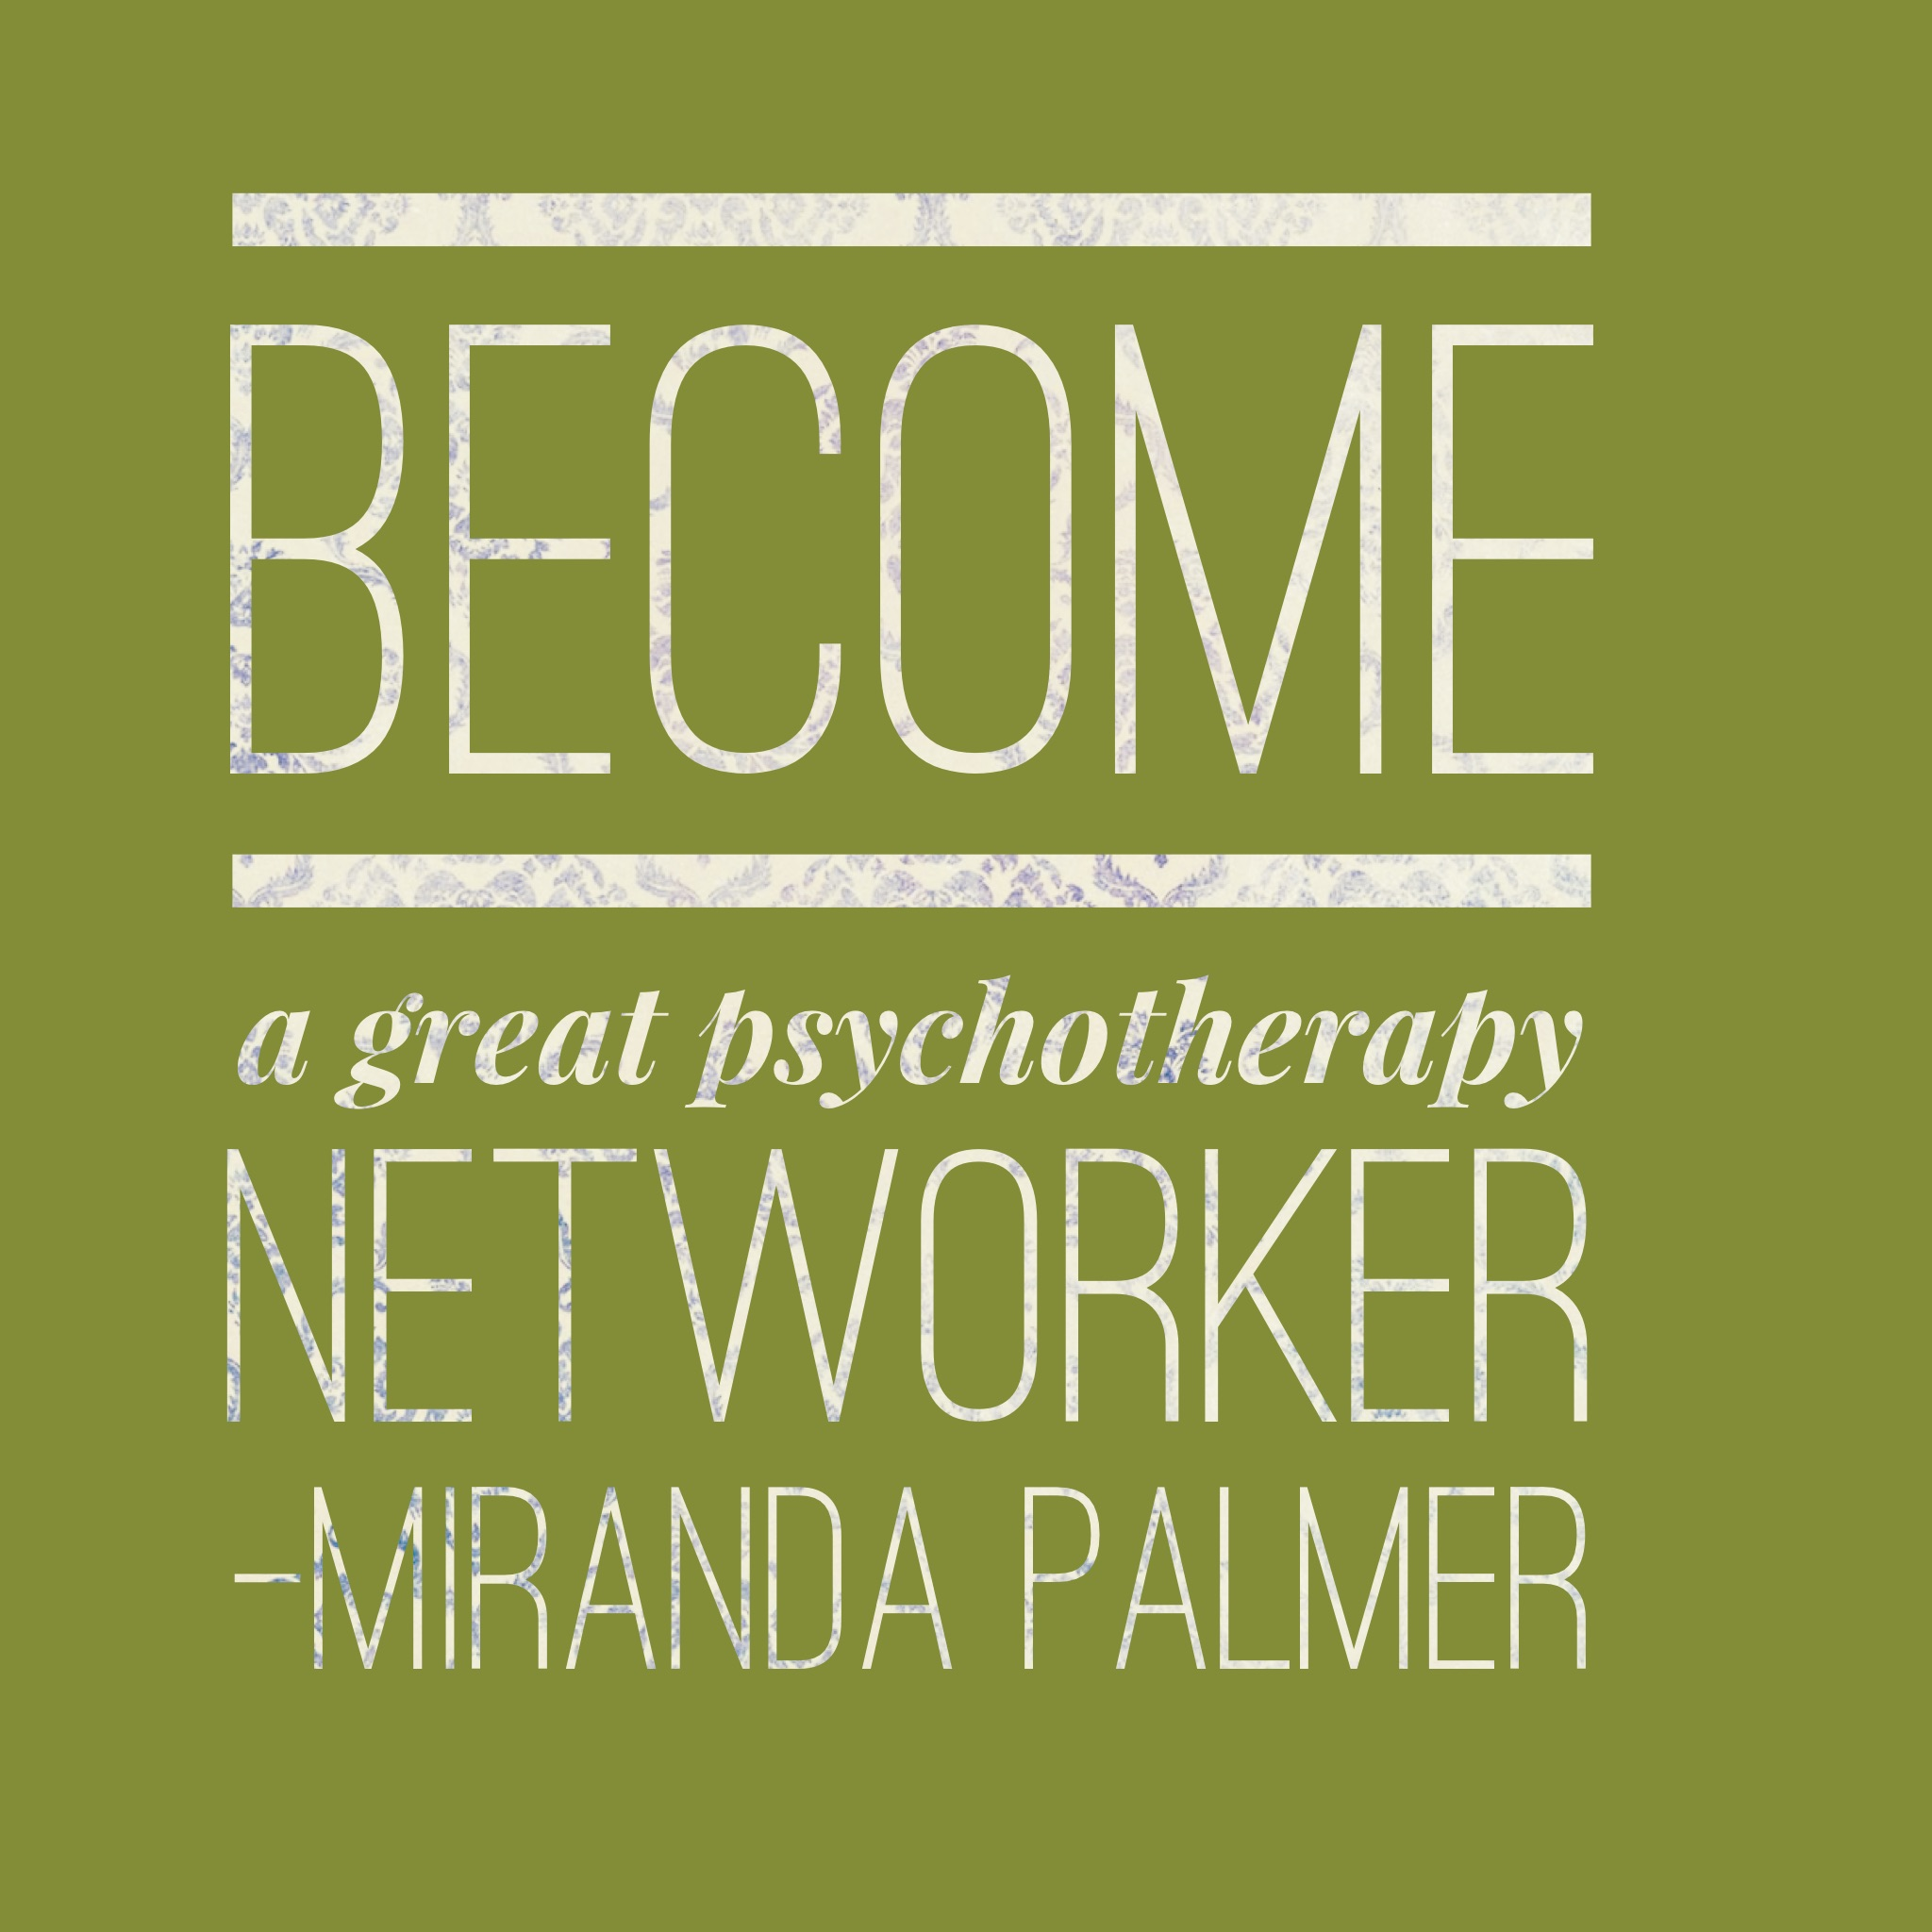 Become a great psychotherapy networker